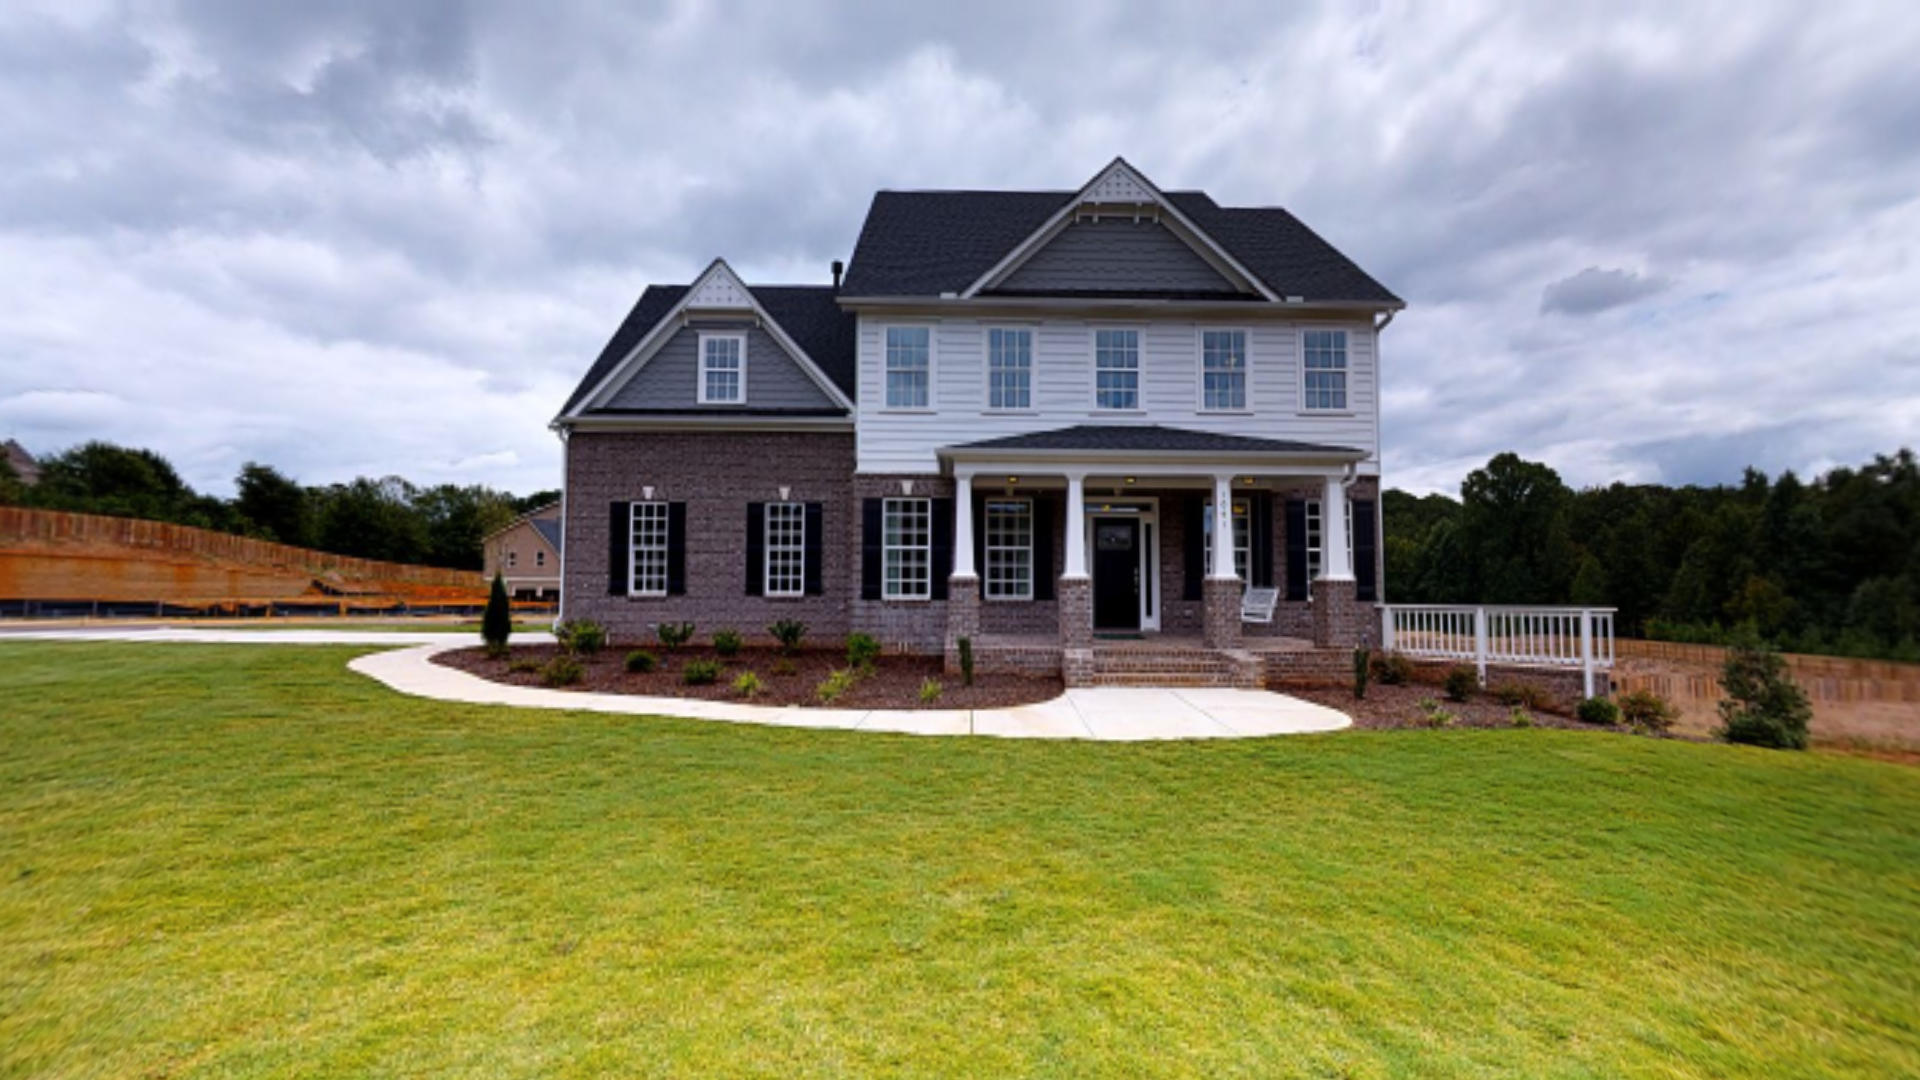 The Walk at Brookwood by O'dwyer Homes in Lawrenceville GA - Gwinnett County new homes